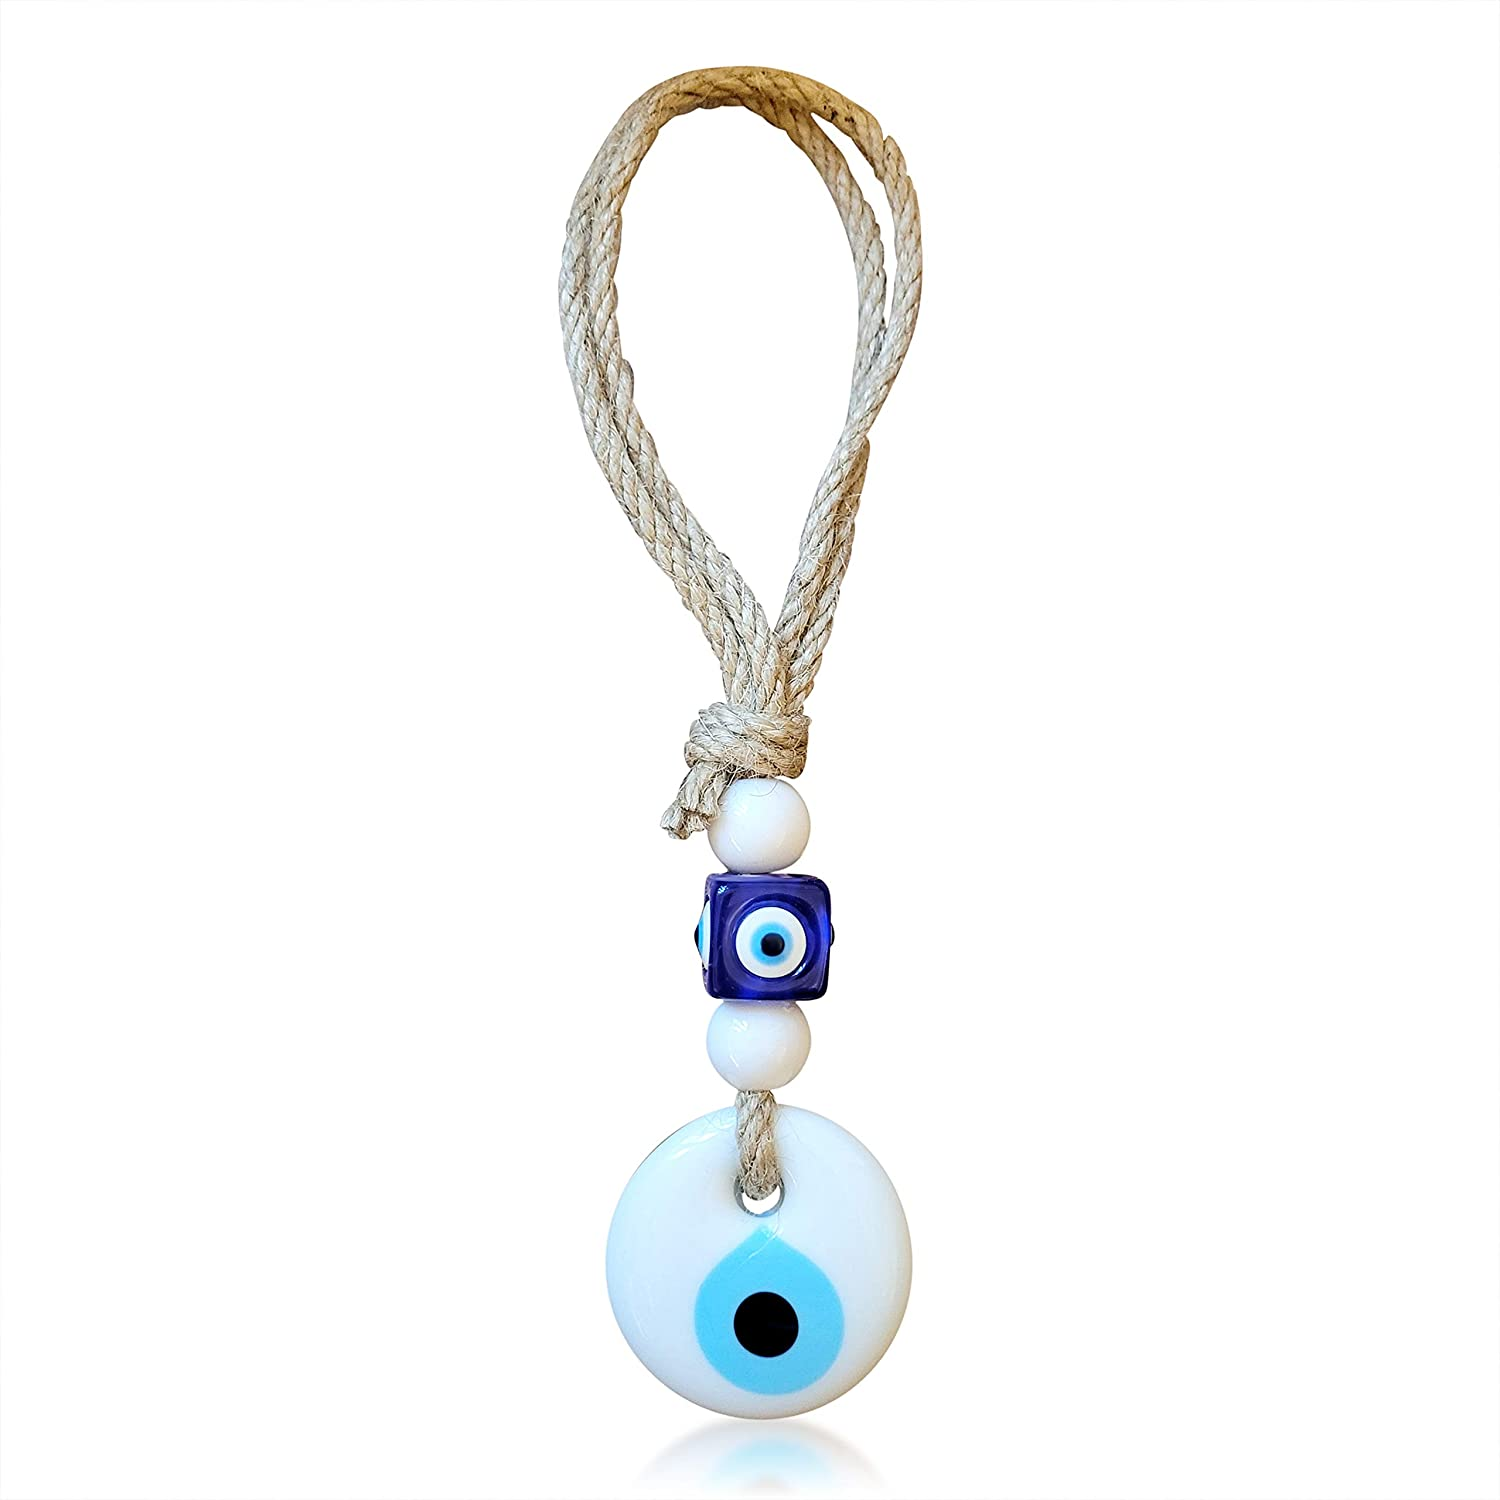 Evil Eye Hanging Car Charm Ornament Accessory for Rear View Mirror in White Glass for Blessings, Reflect Negative Energy, Perfect New Driver Gift, Party Favor for Weddings, Closing Gift Purchase